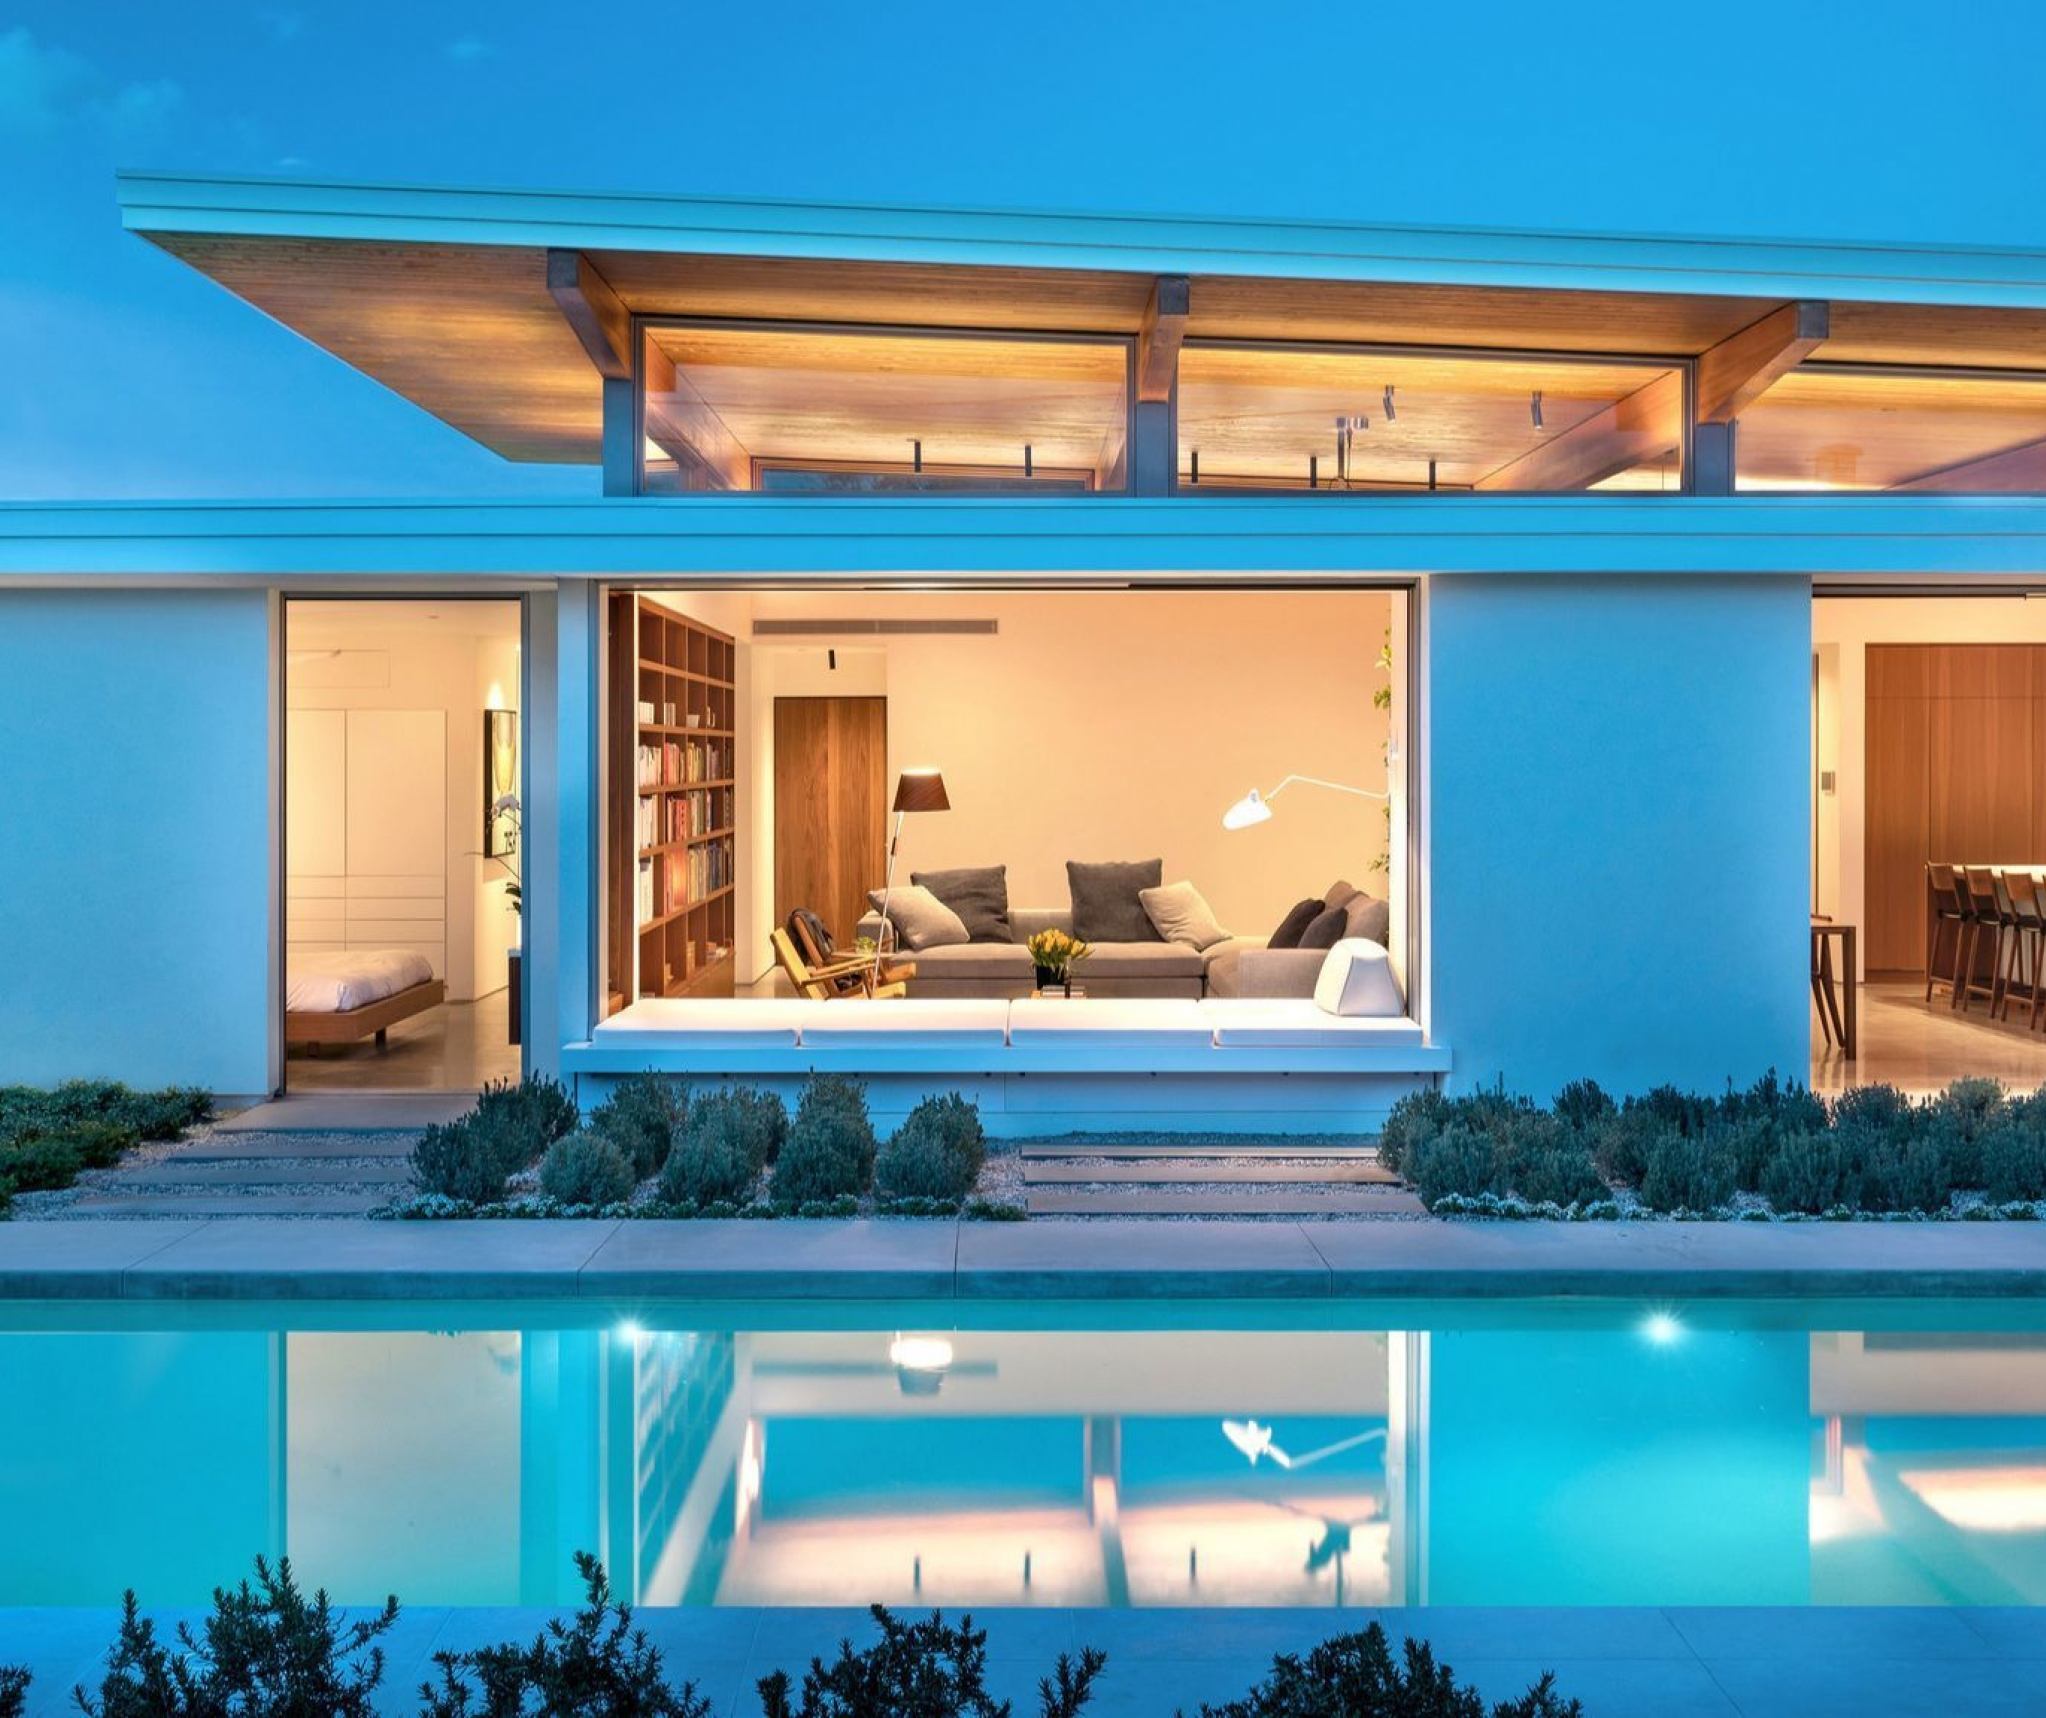 Can you believe this custom home is a prefab? Tour it during Modernism Week in Palm Springs